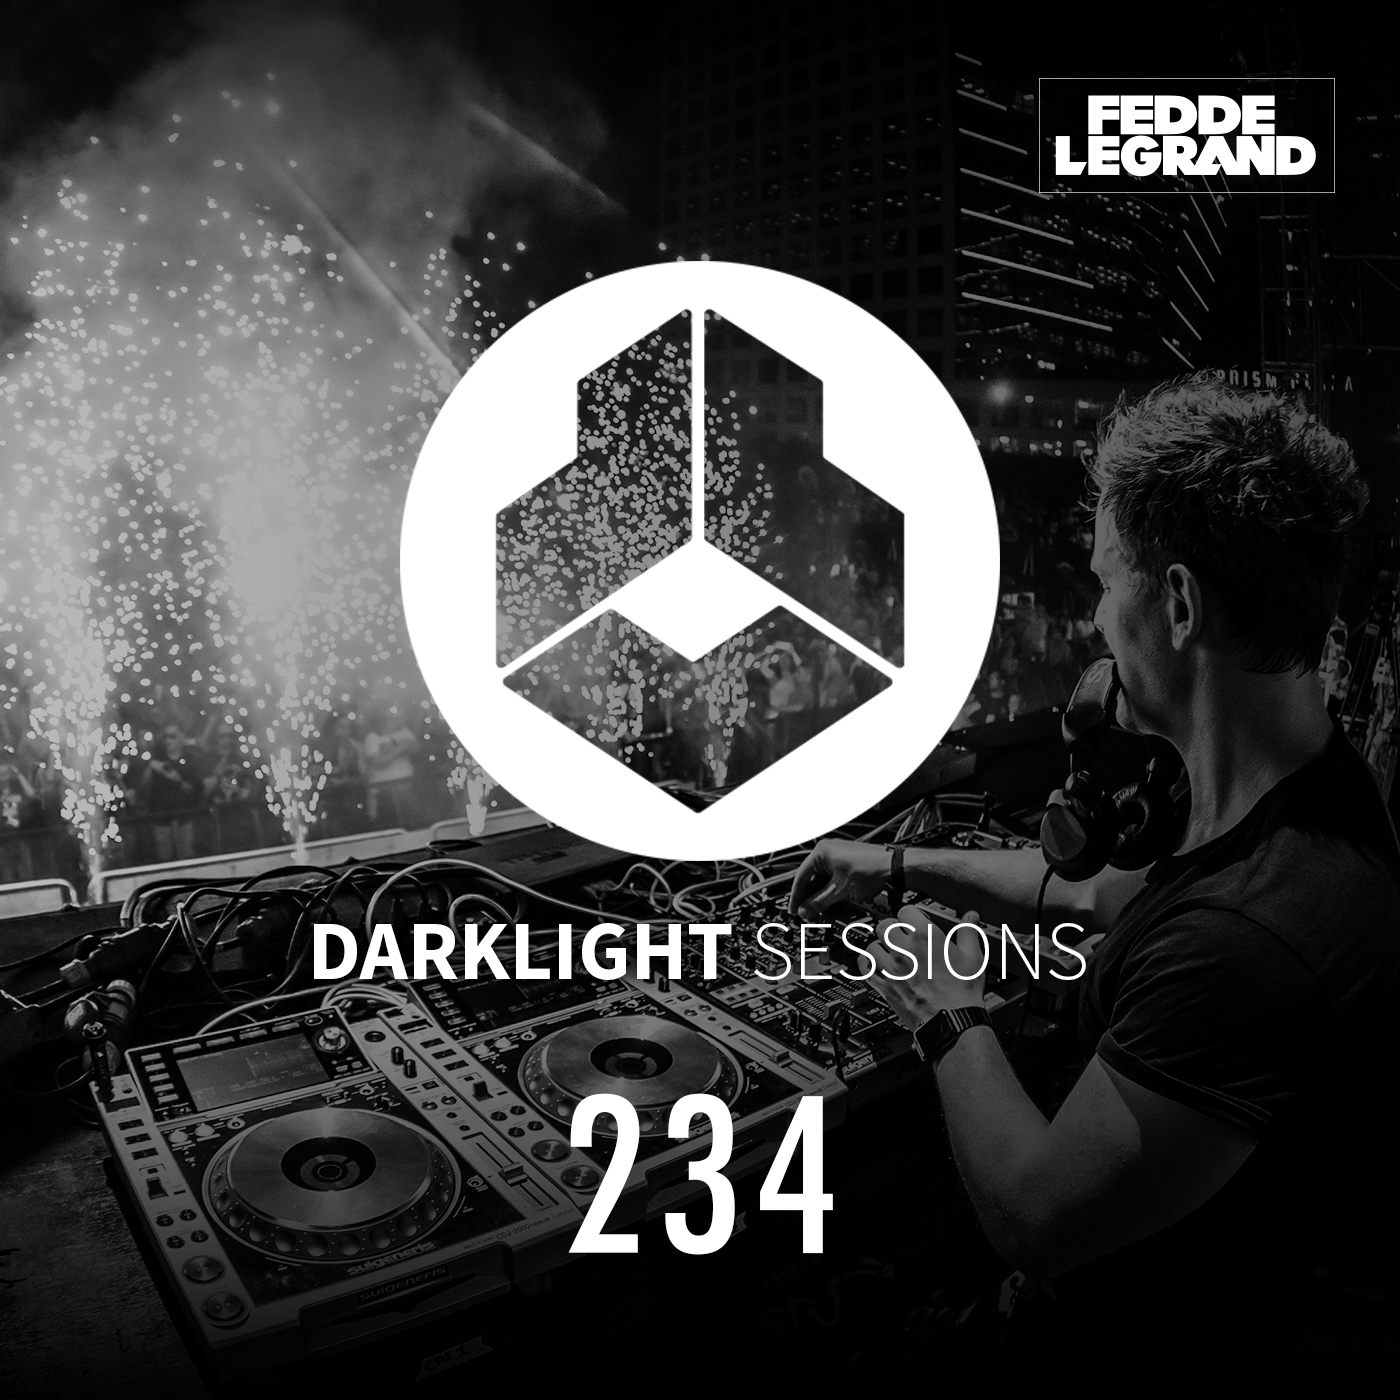 Darklight Sessions 234